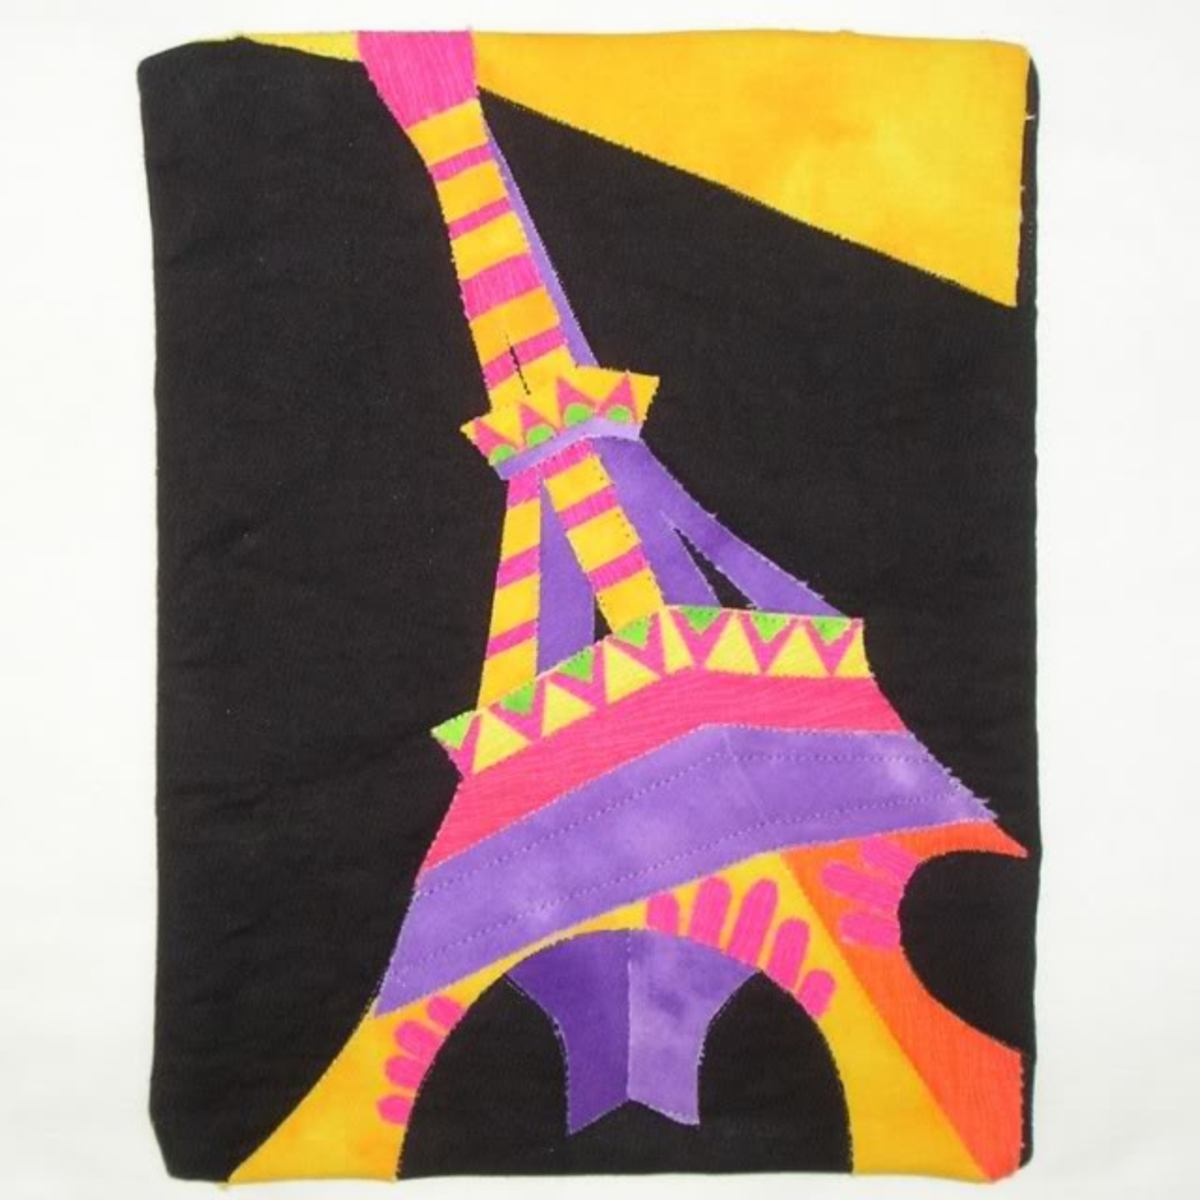 Tour Eiffel inspired by DeLaunay